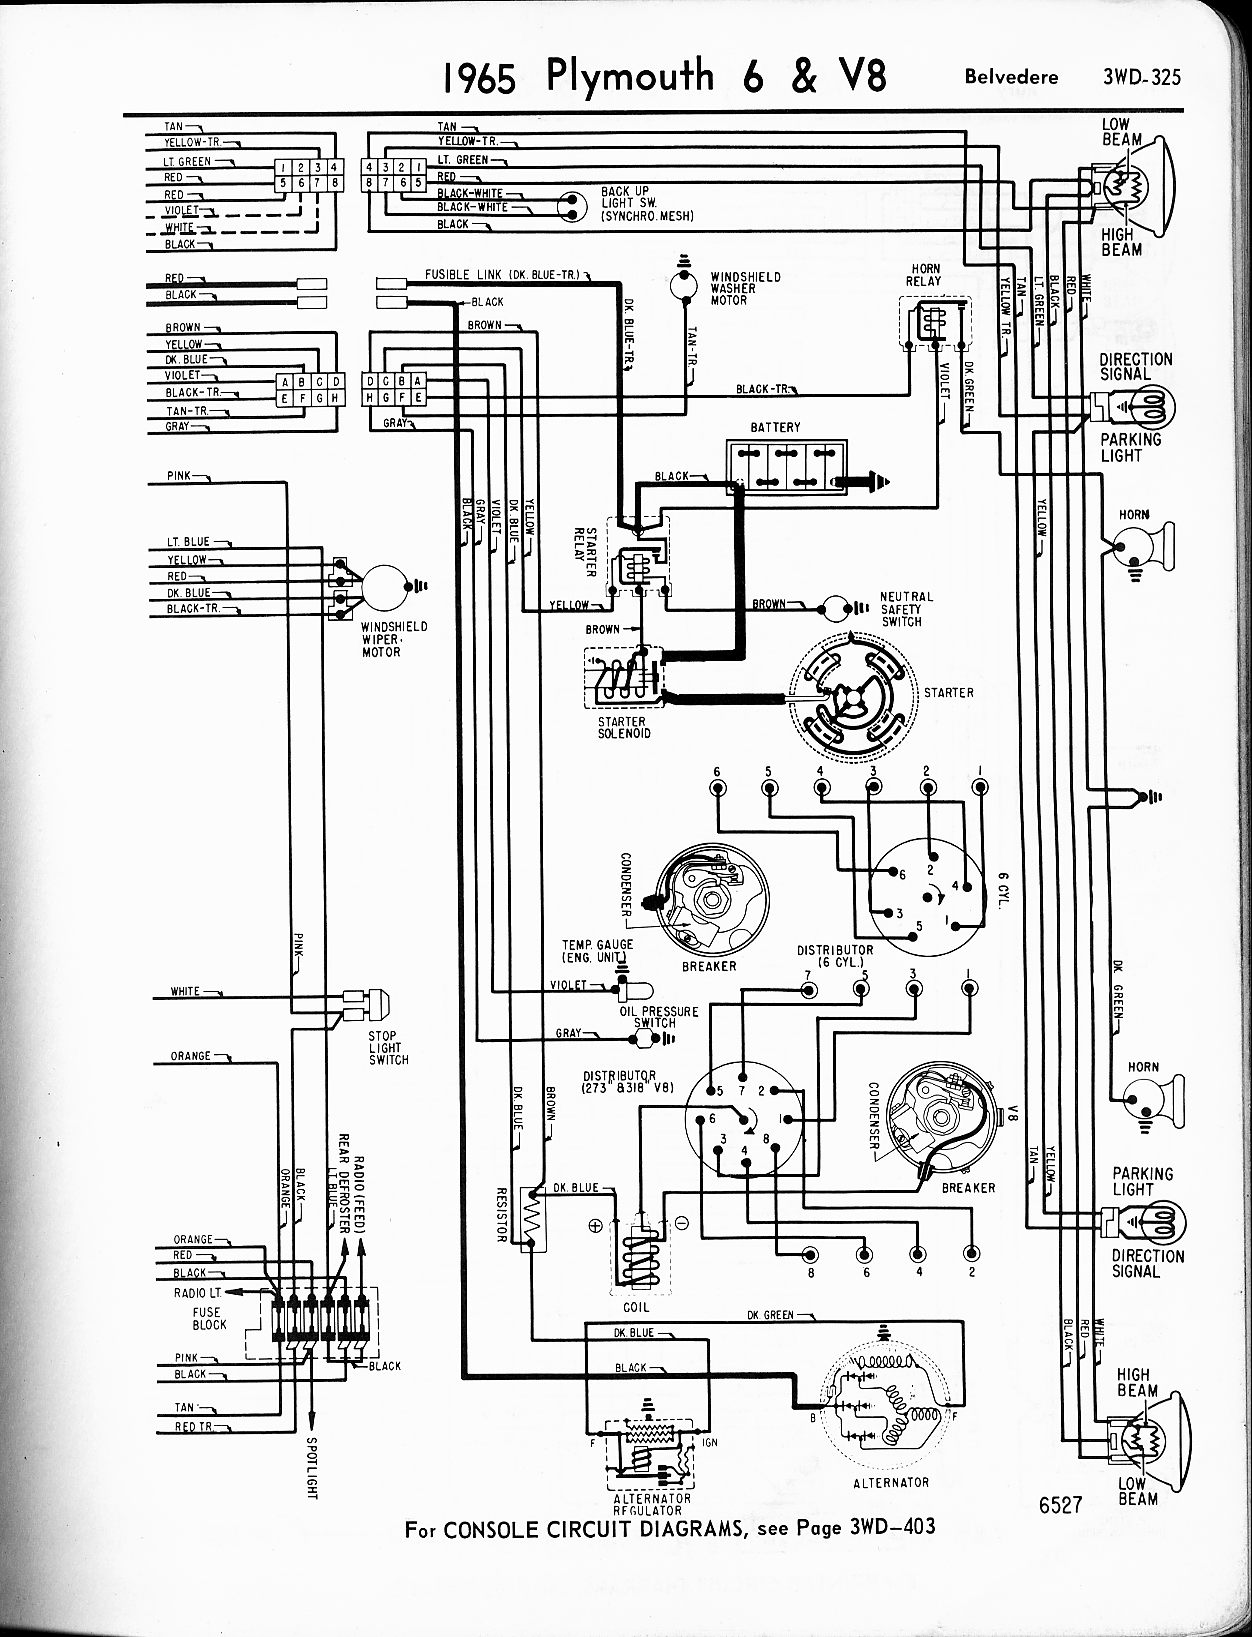 Wiring Diagram For 65 Plymouth 6 - wiring diagram oline for ... on old car accessories, old car chassis, old car electrical systems, old car spec sheets, old car brakes, old car engine, old auto diagrams, old car charging system, old car ignition, old car parts, old car battery, old car blueprints, old car schematics,